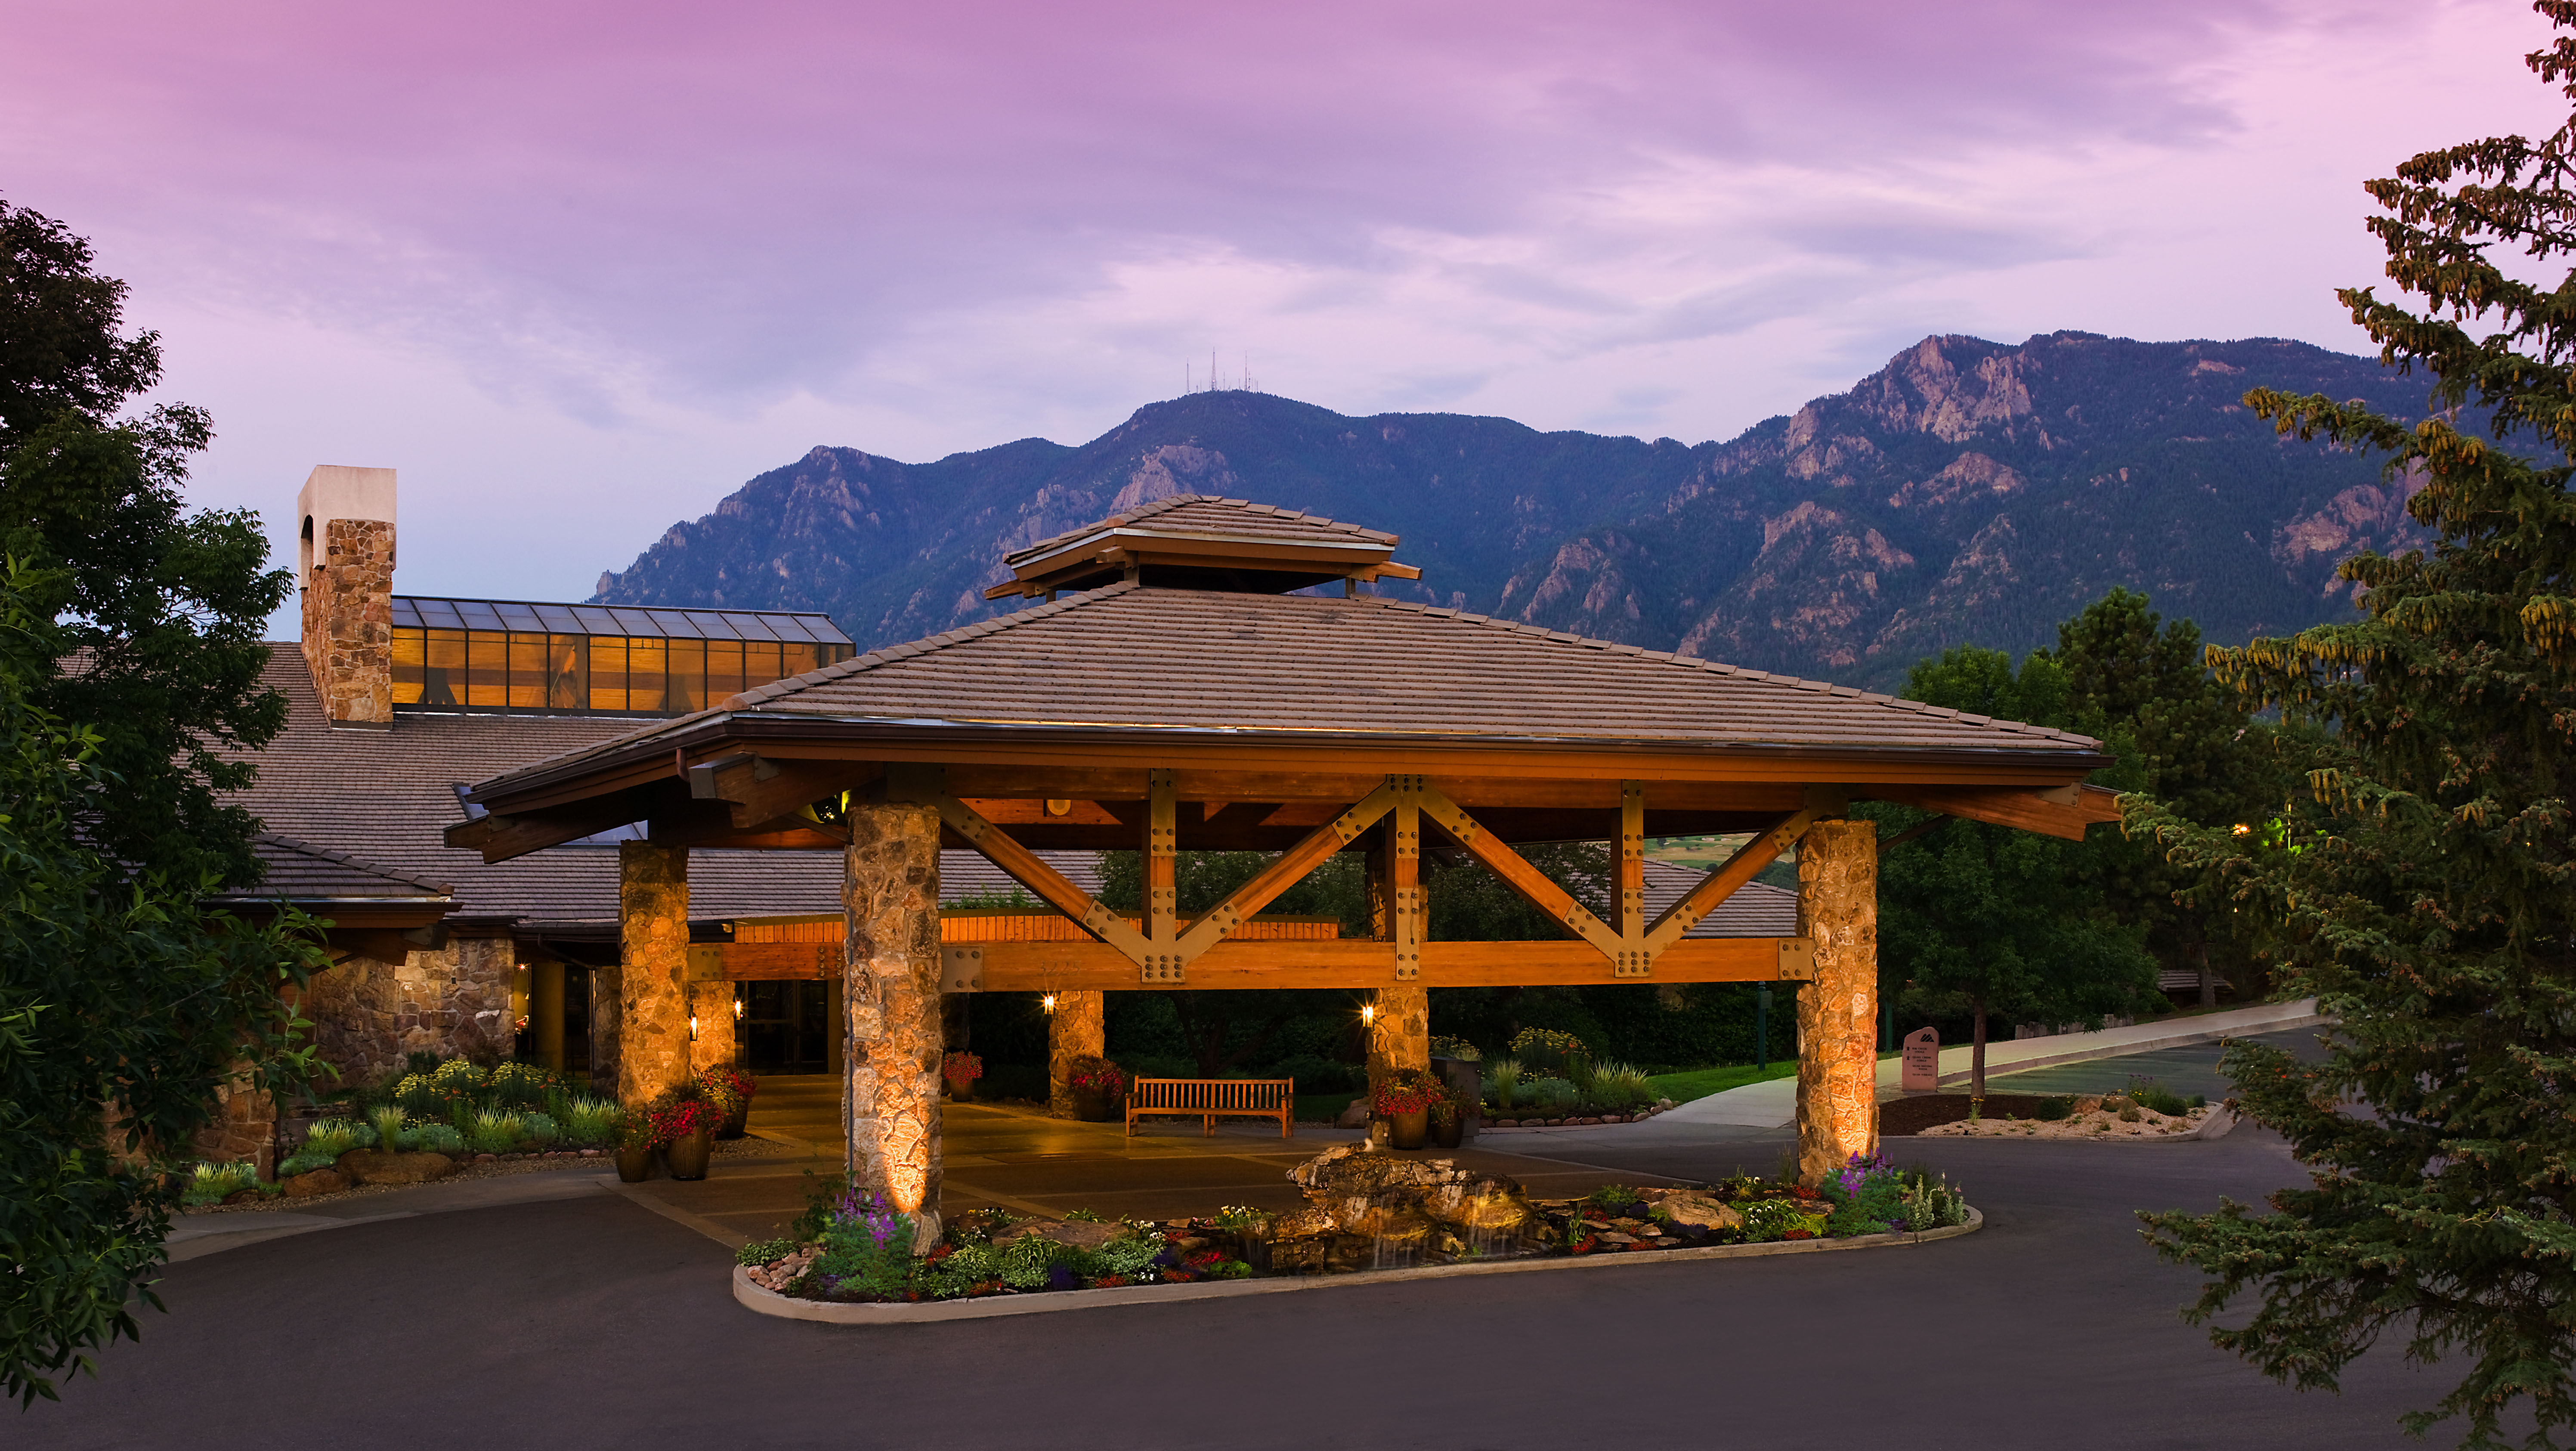 Venue rocky mountain young professionals summit rmyps for Rocky mountain house swimming pool schedule